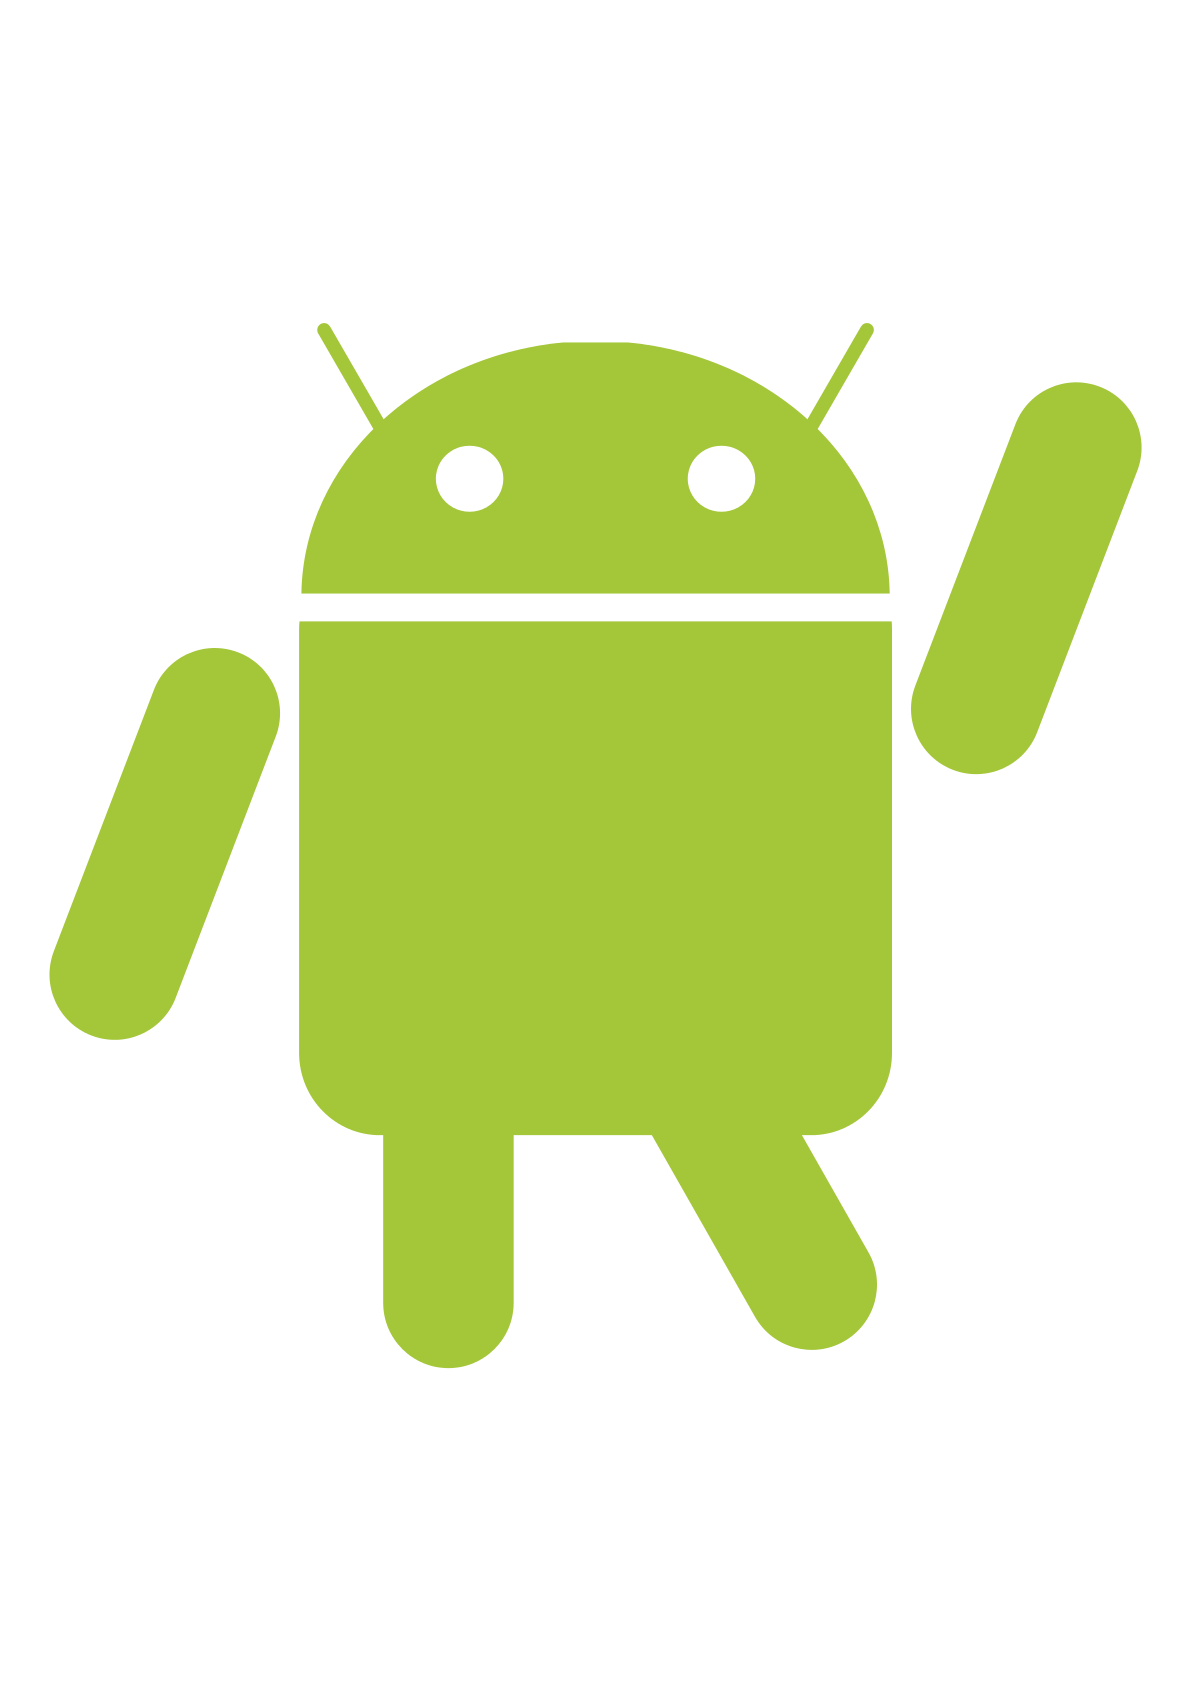 clip transparent library Using svg android. Geekfish thoughtstreams ive been